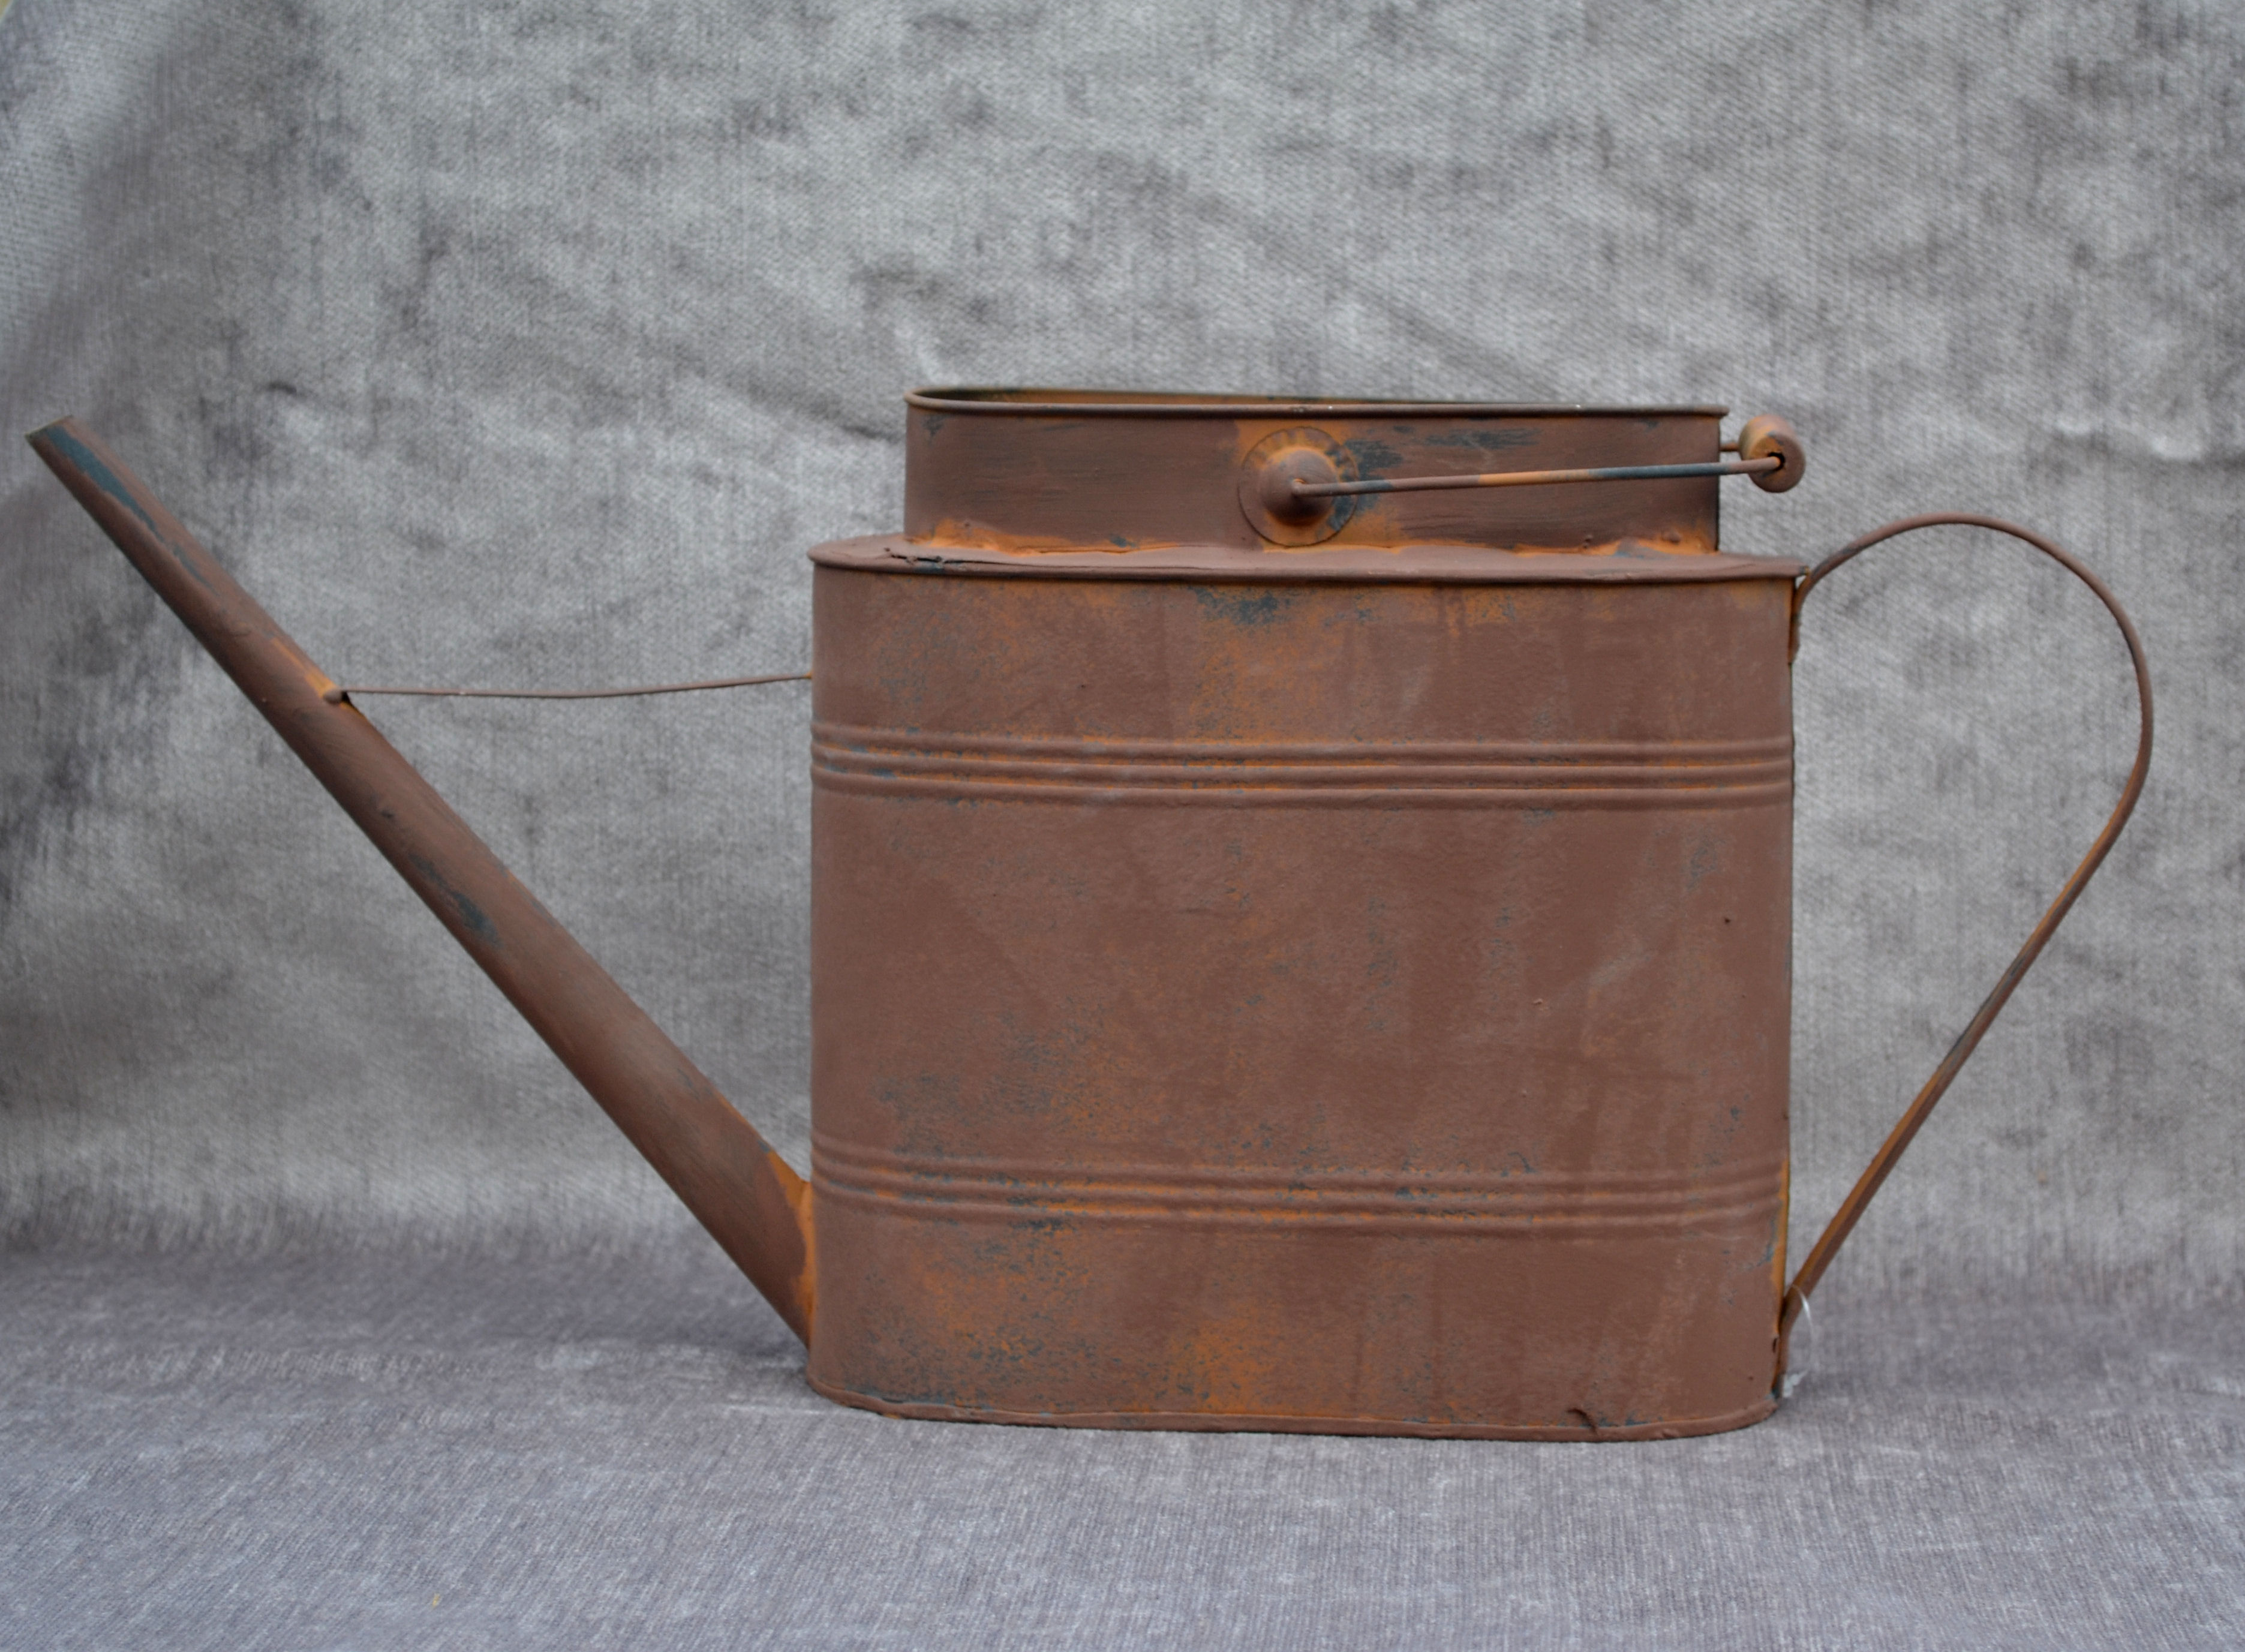 metal-watering-can-oblong-4025006215.jpg